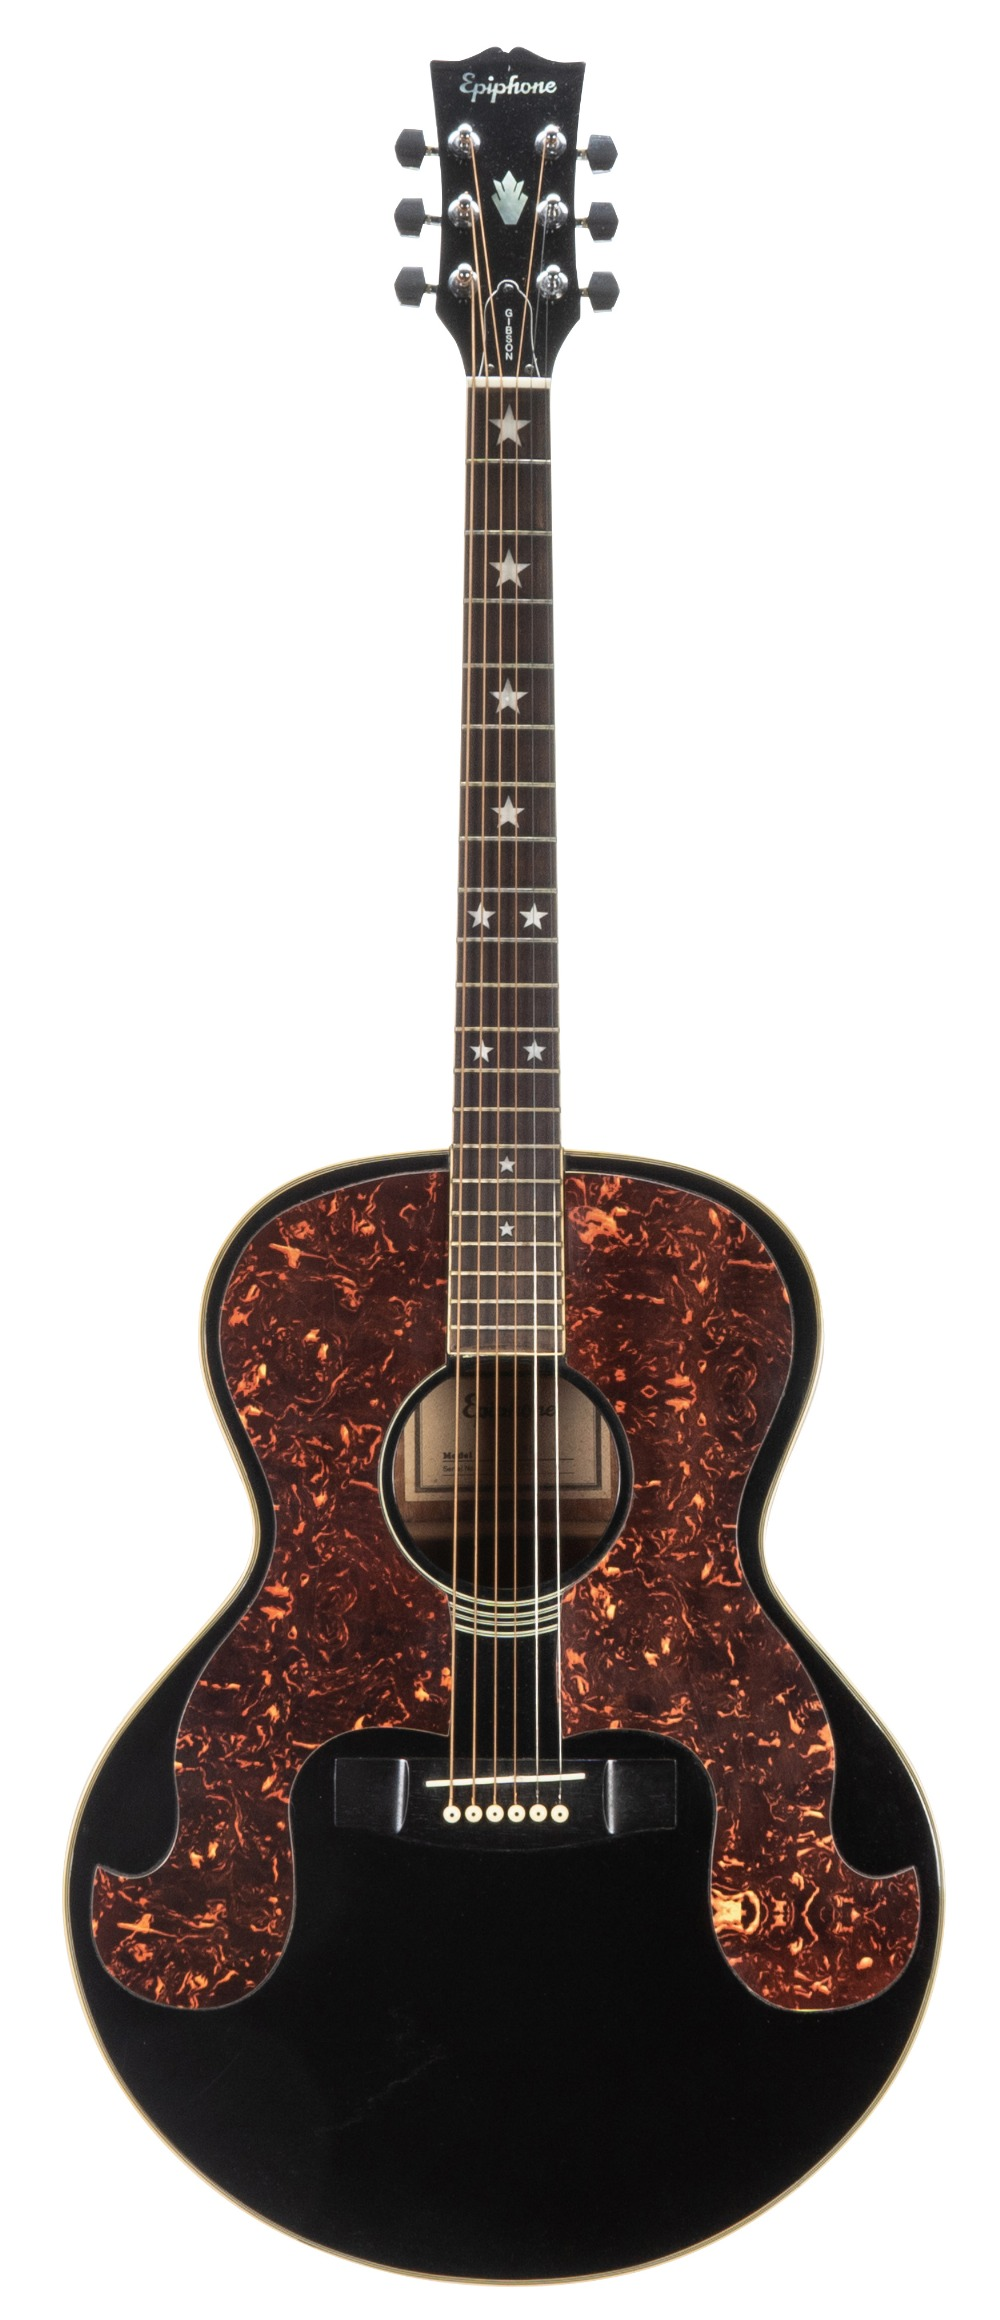 Epiphone SQ-180 acoustic guitar, ser. no. 00xxx53; Finish: black, various surface scratches;